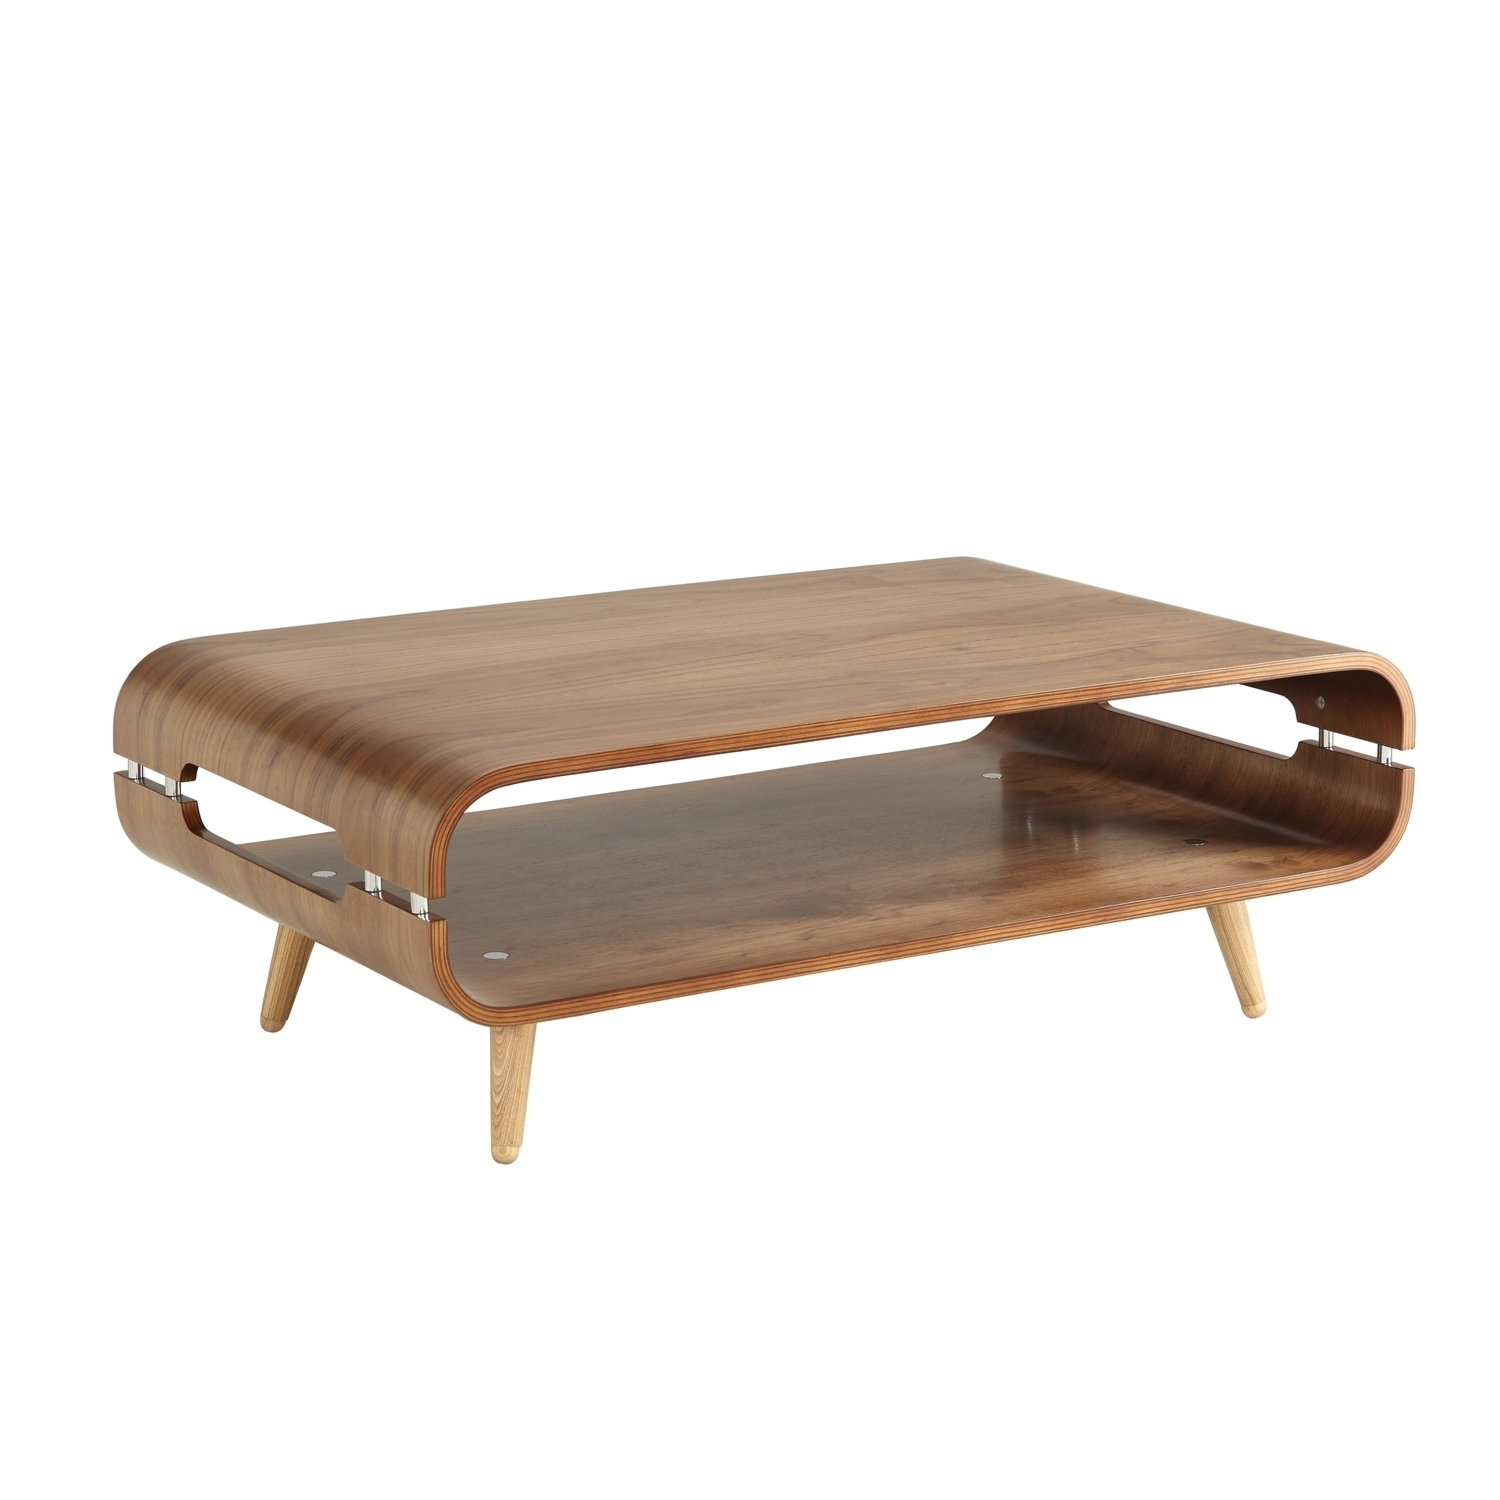 Jual Coffee Table Inside Contemporary Curves Coffee Tables (View 18 of 30)